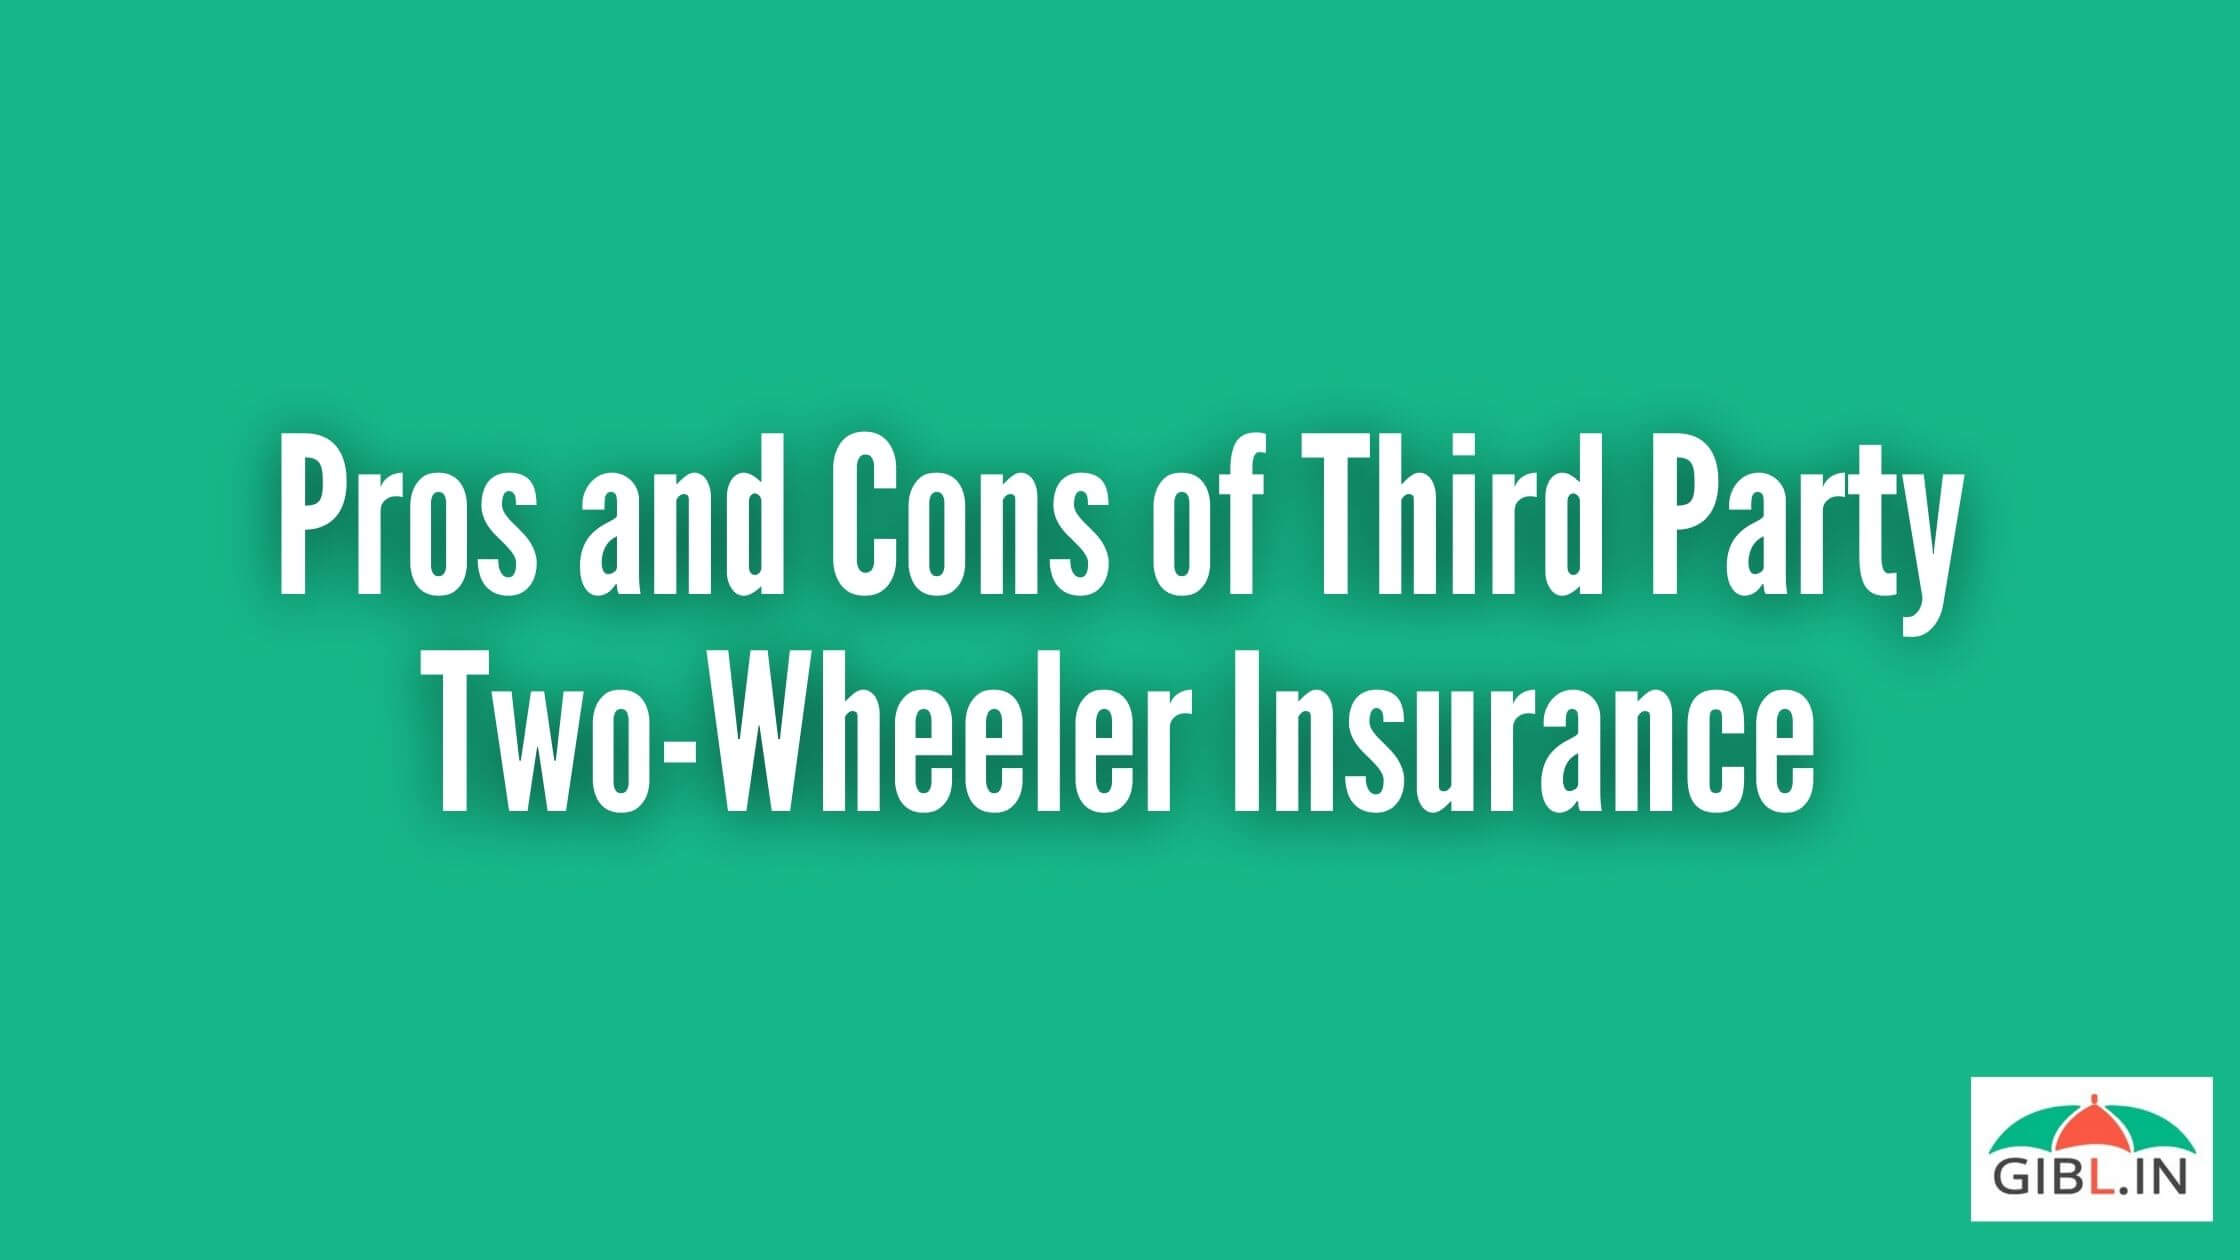 Pros and Cons of Third Party Two-Wheeler Insurance